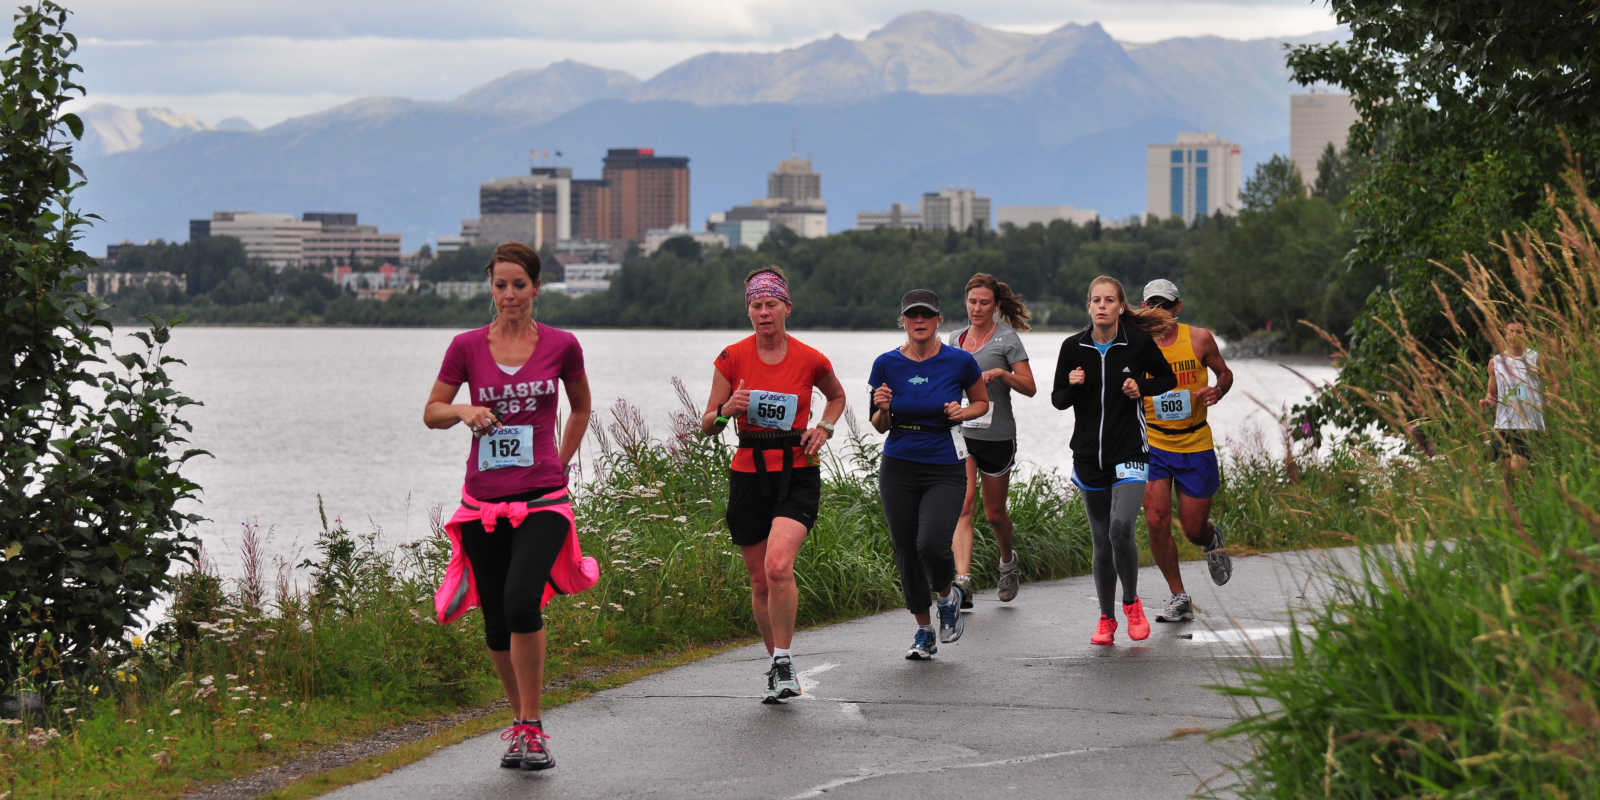 Anchorage marathons and running trails